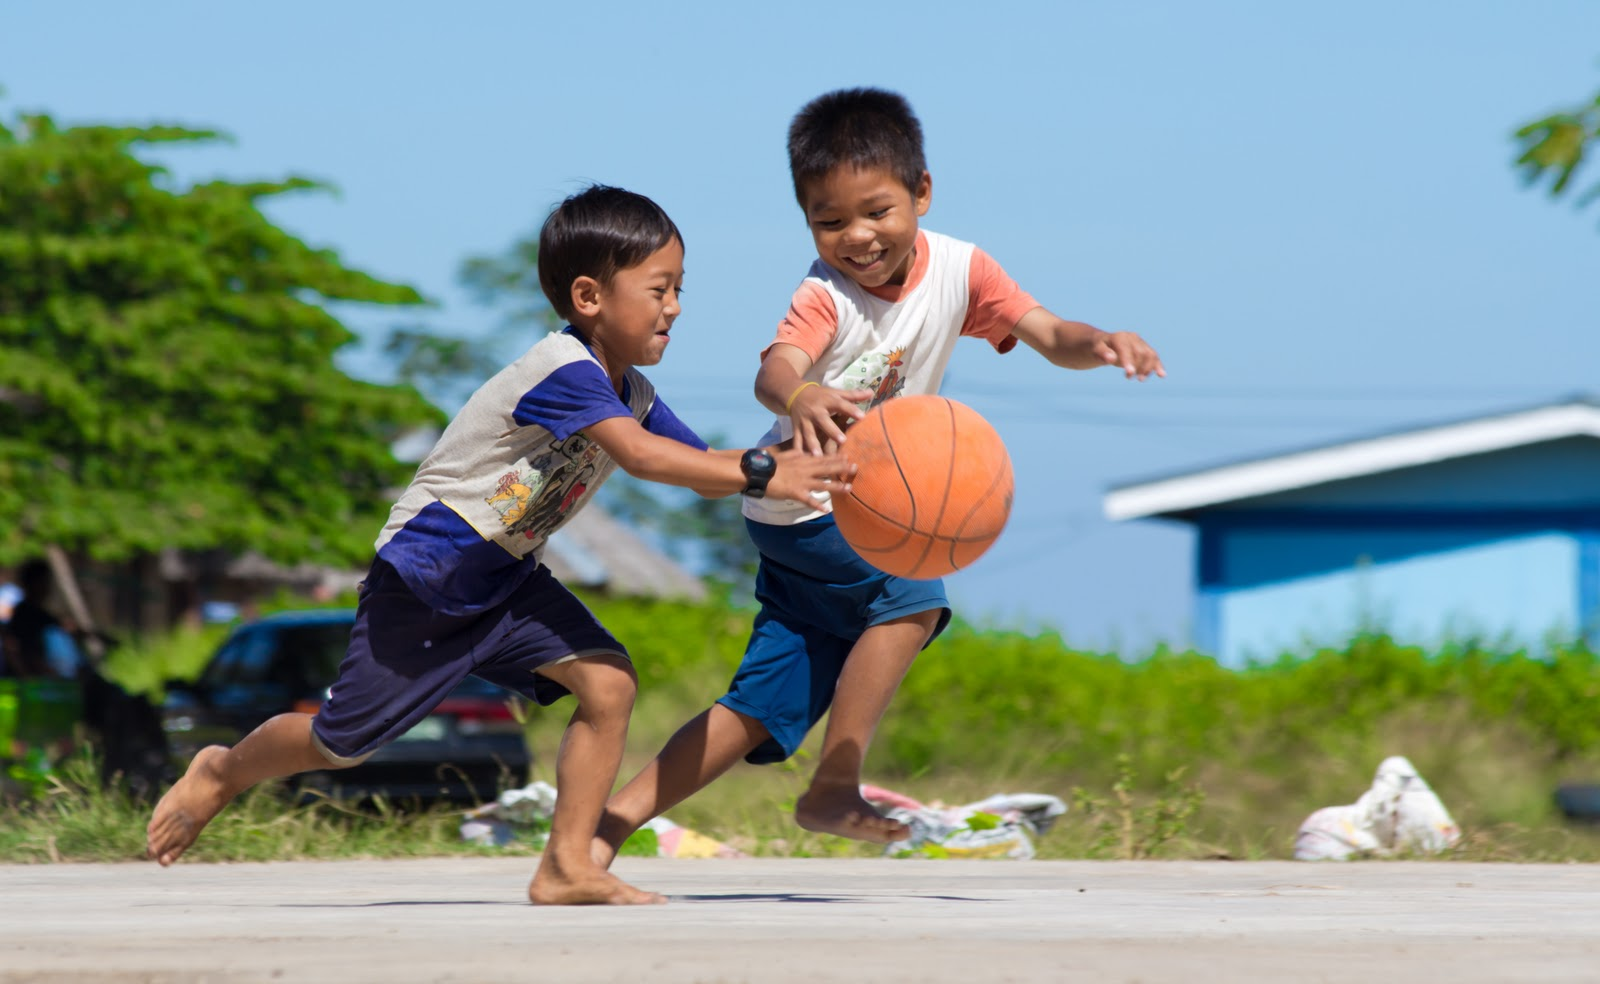 This two kids playing under the scorching heat of the sun running